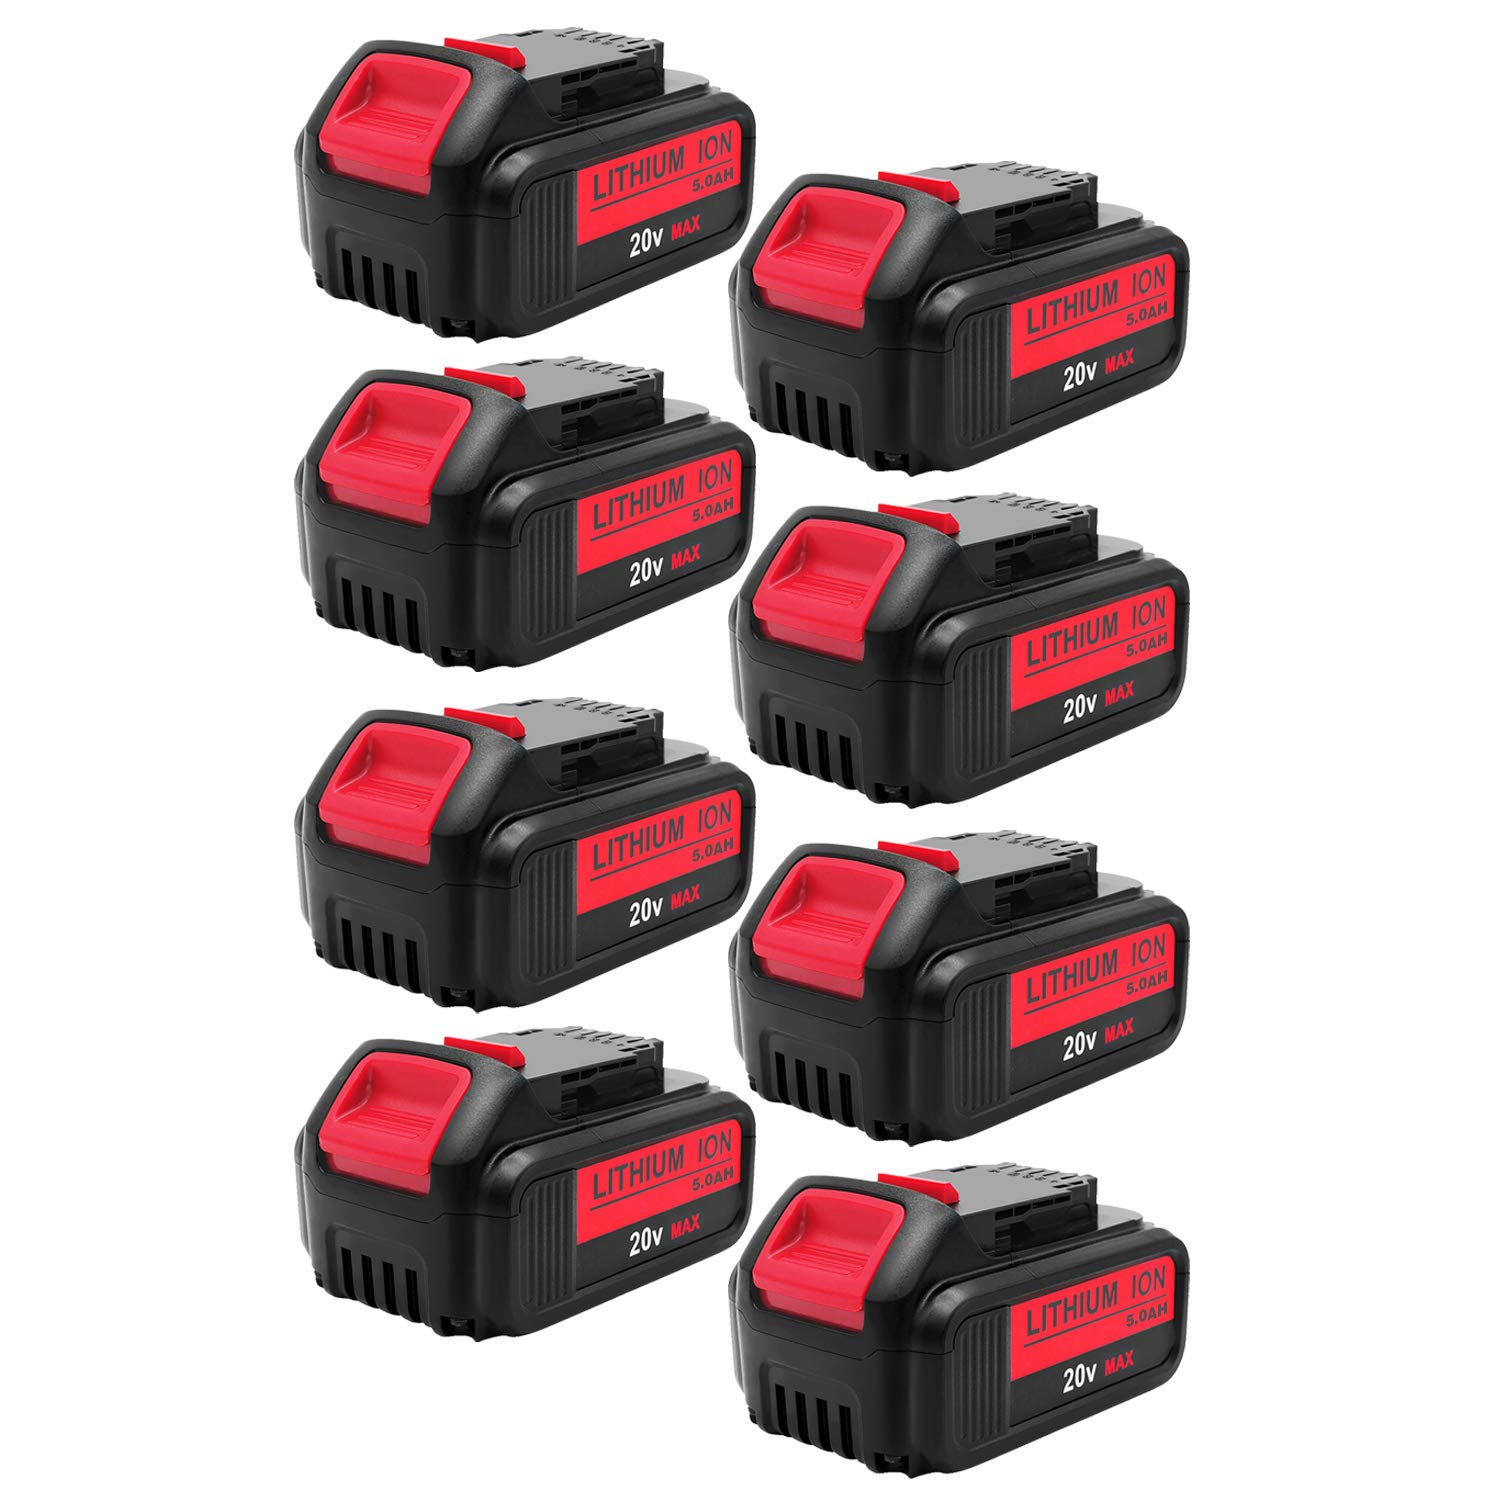 8Pack 5.0Ah 20V DCB200 for Dawelt, Lithium-ion Battery for Dewalt DCB203 DCB204 DCB205 DCB205-2 DCB180 DCD985B DCD771C2 DCS355D1 DCD790B